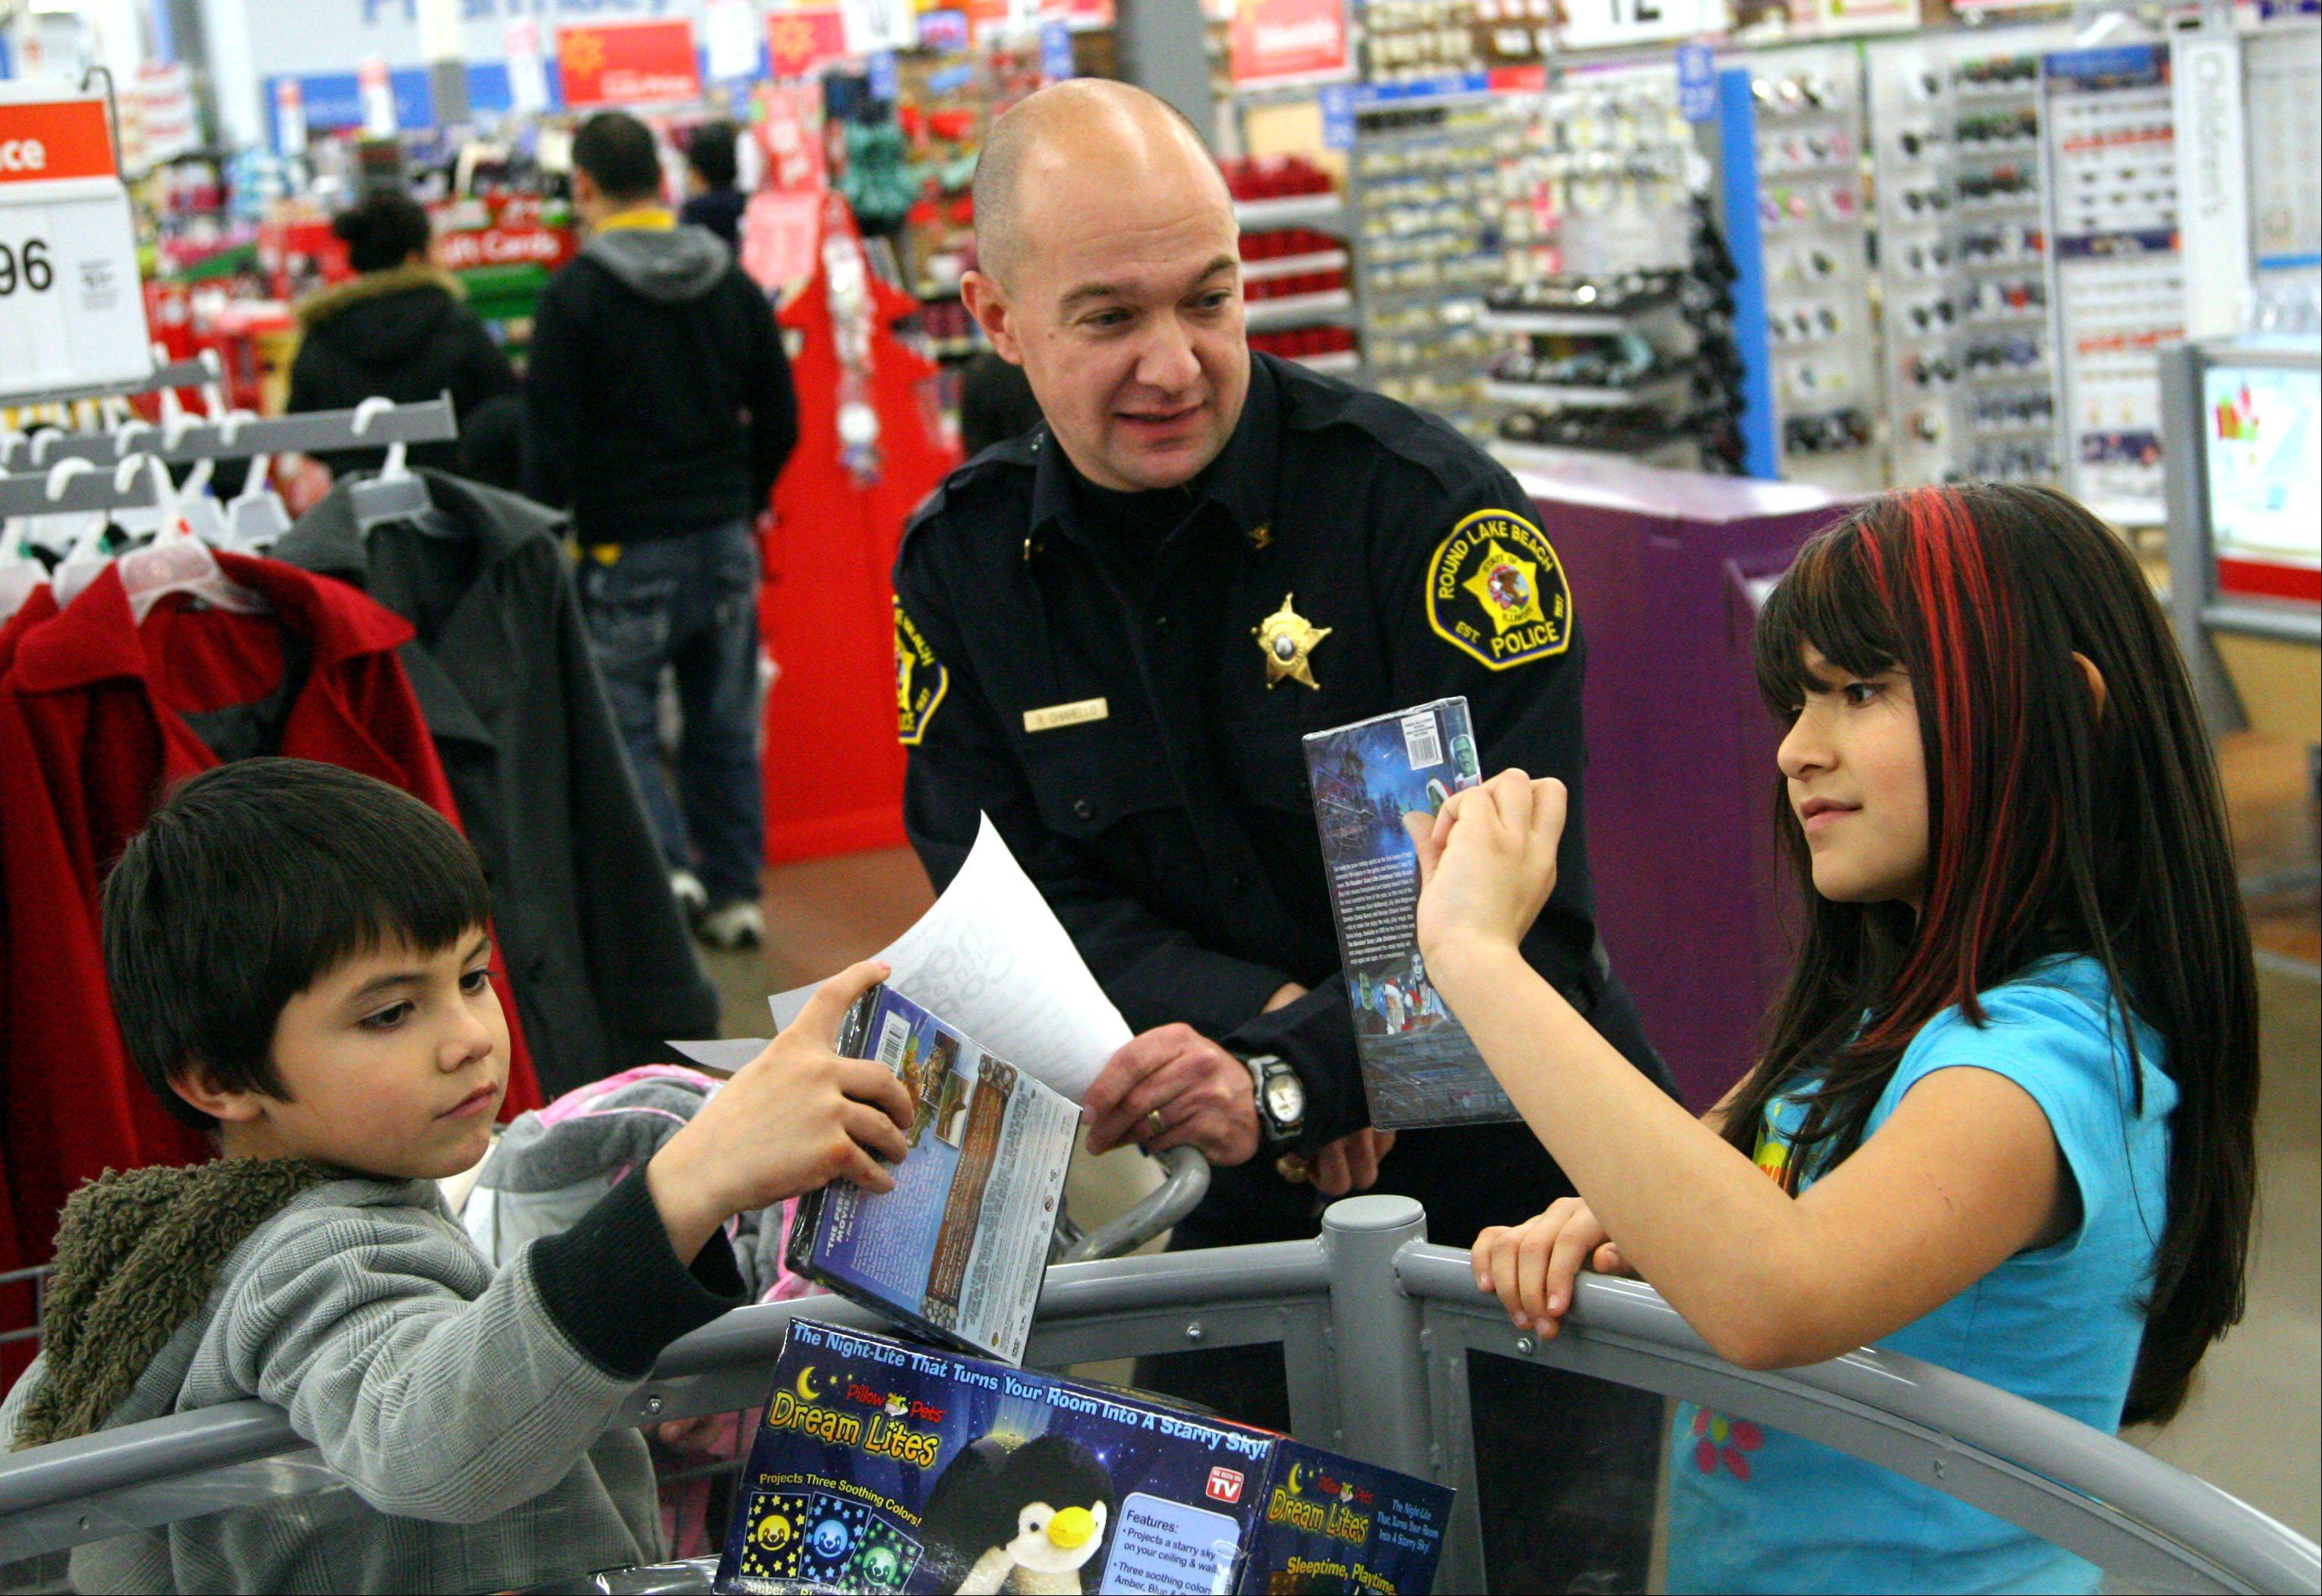 Round Lake Beach Deputy Police Chief Richard Chiarello helps 9-year-old Haley Falcon, right, and her brother Andrew, 8, shop for DVDs during Monday's Shop with a Cop at Walmart in Round Lake Beach Monday. Round Lake Park police staged what's Lake County's original Shop with a Cop program.